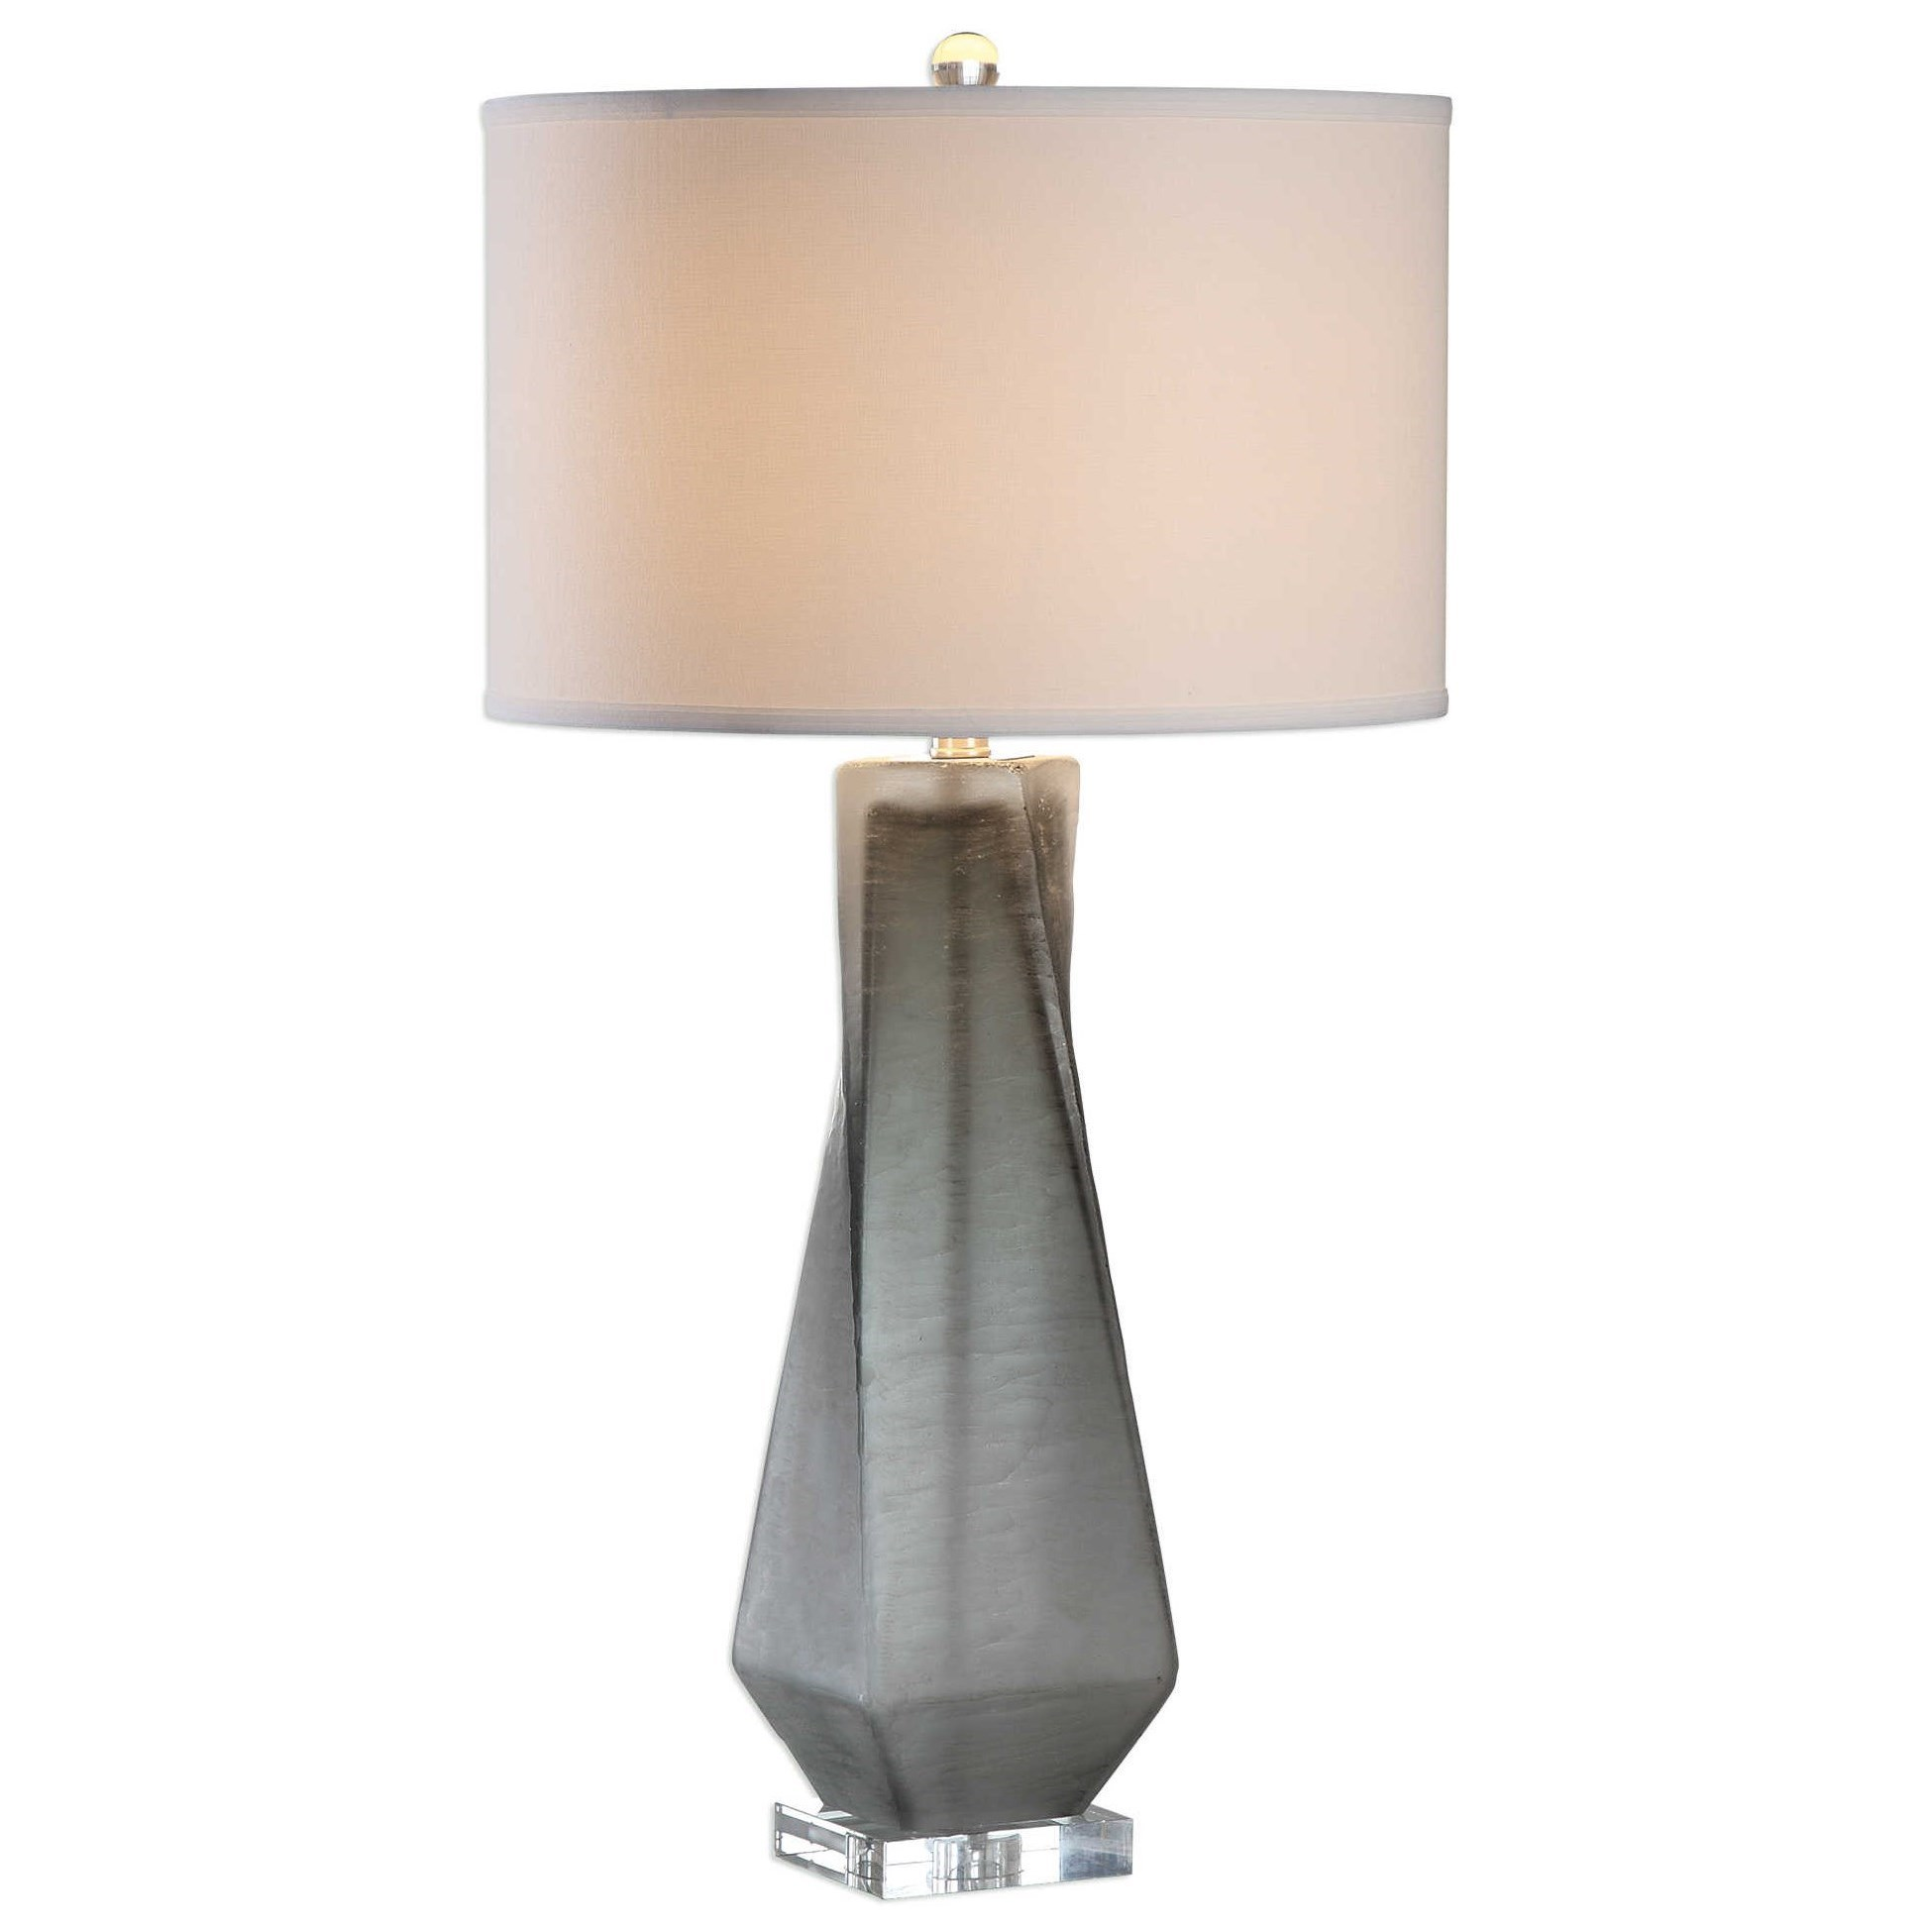 Table Lamps Anatoli Charcoal Gray Table Lamp by Uttermost at Lagniappe Home Store